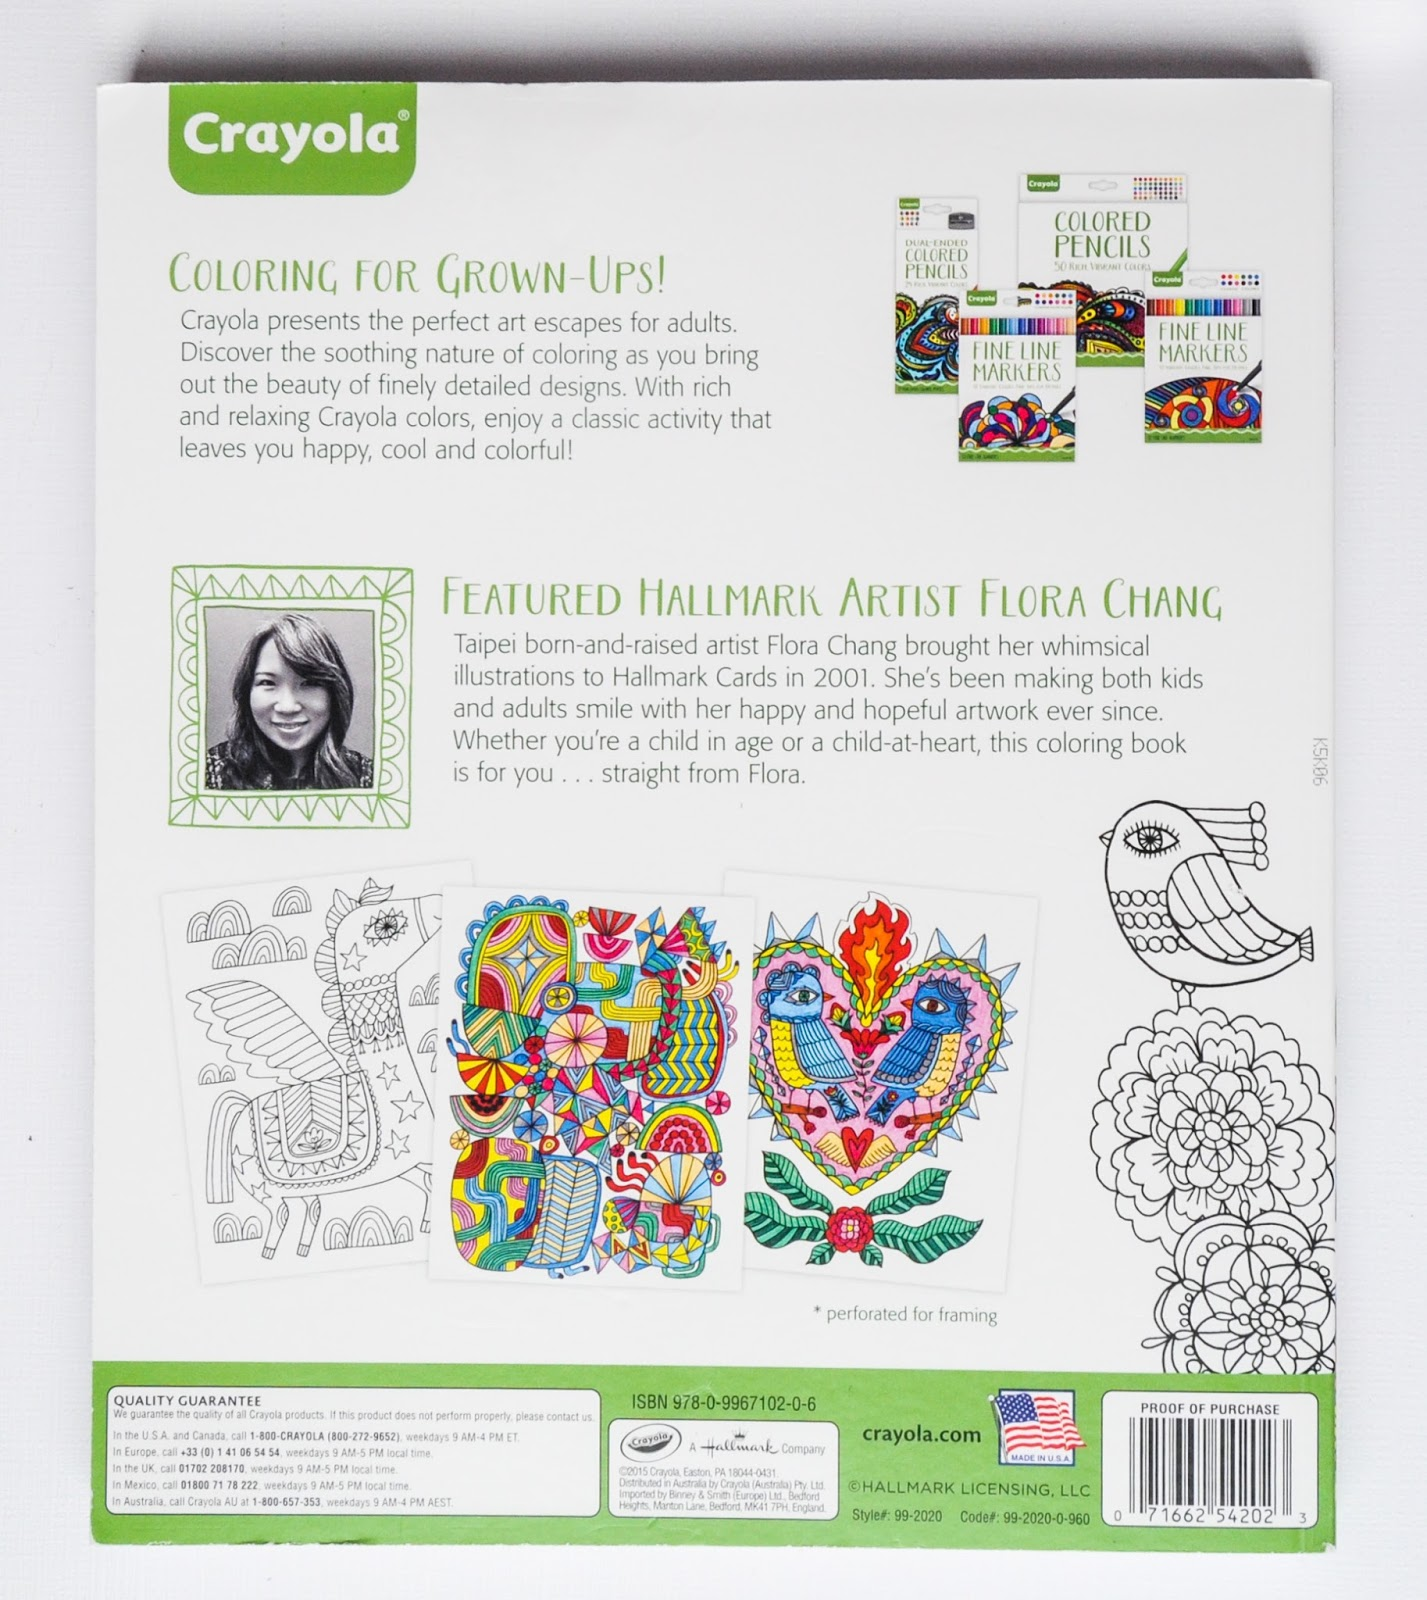 2015 Back Of The Elegant Escapes Coloring Book